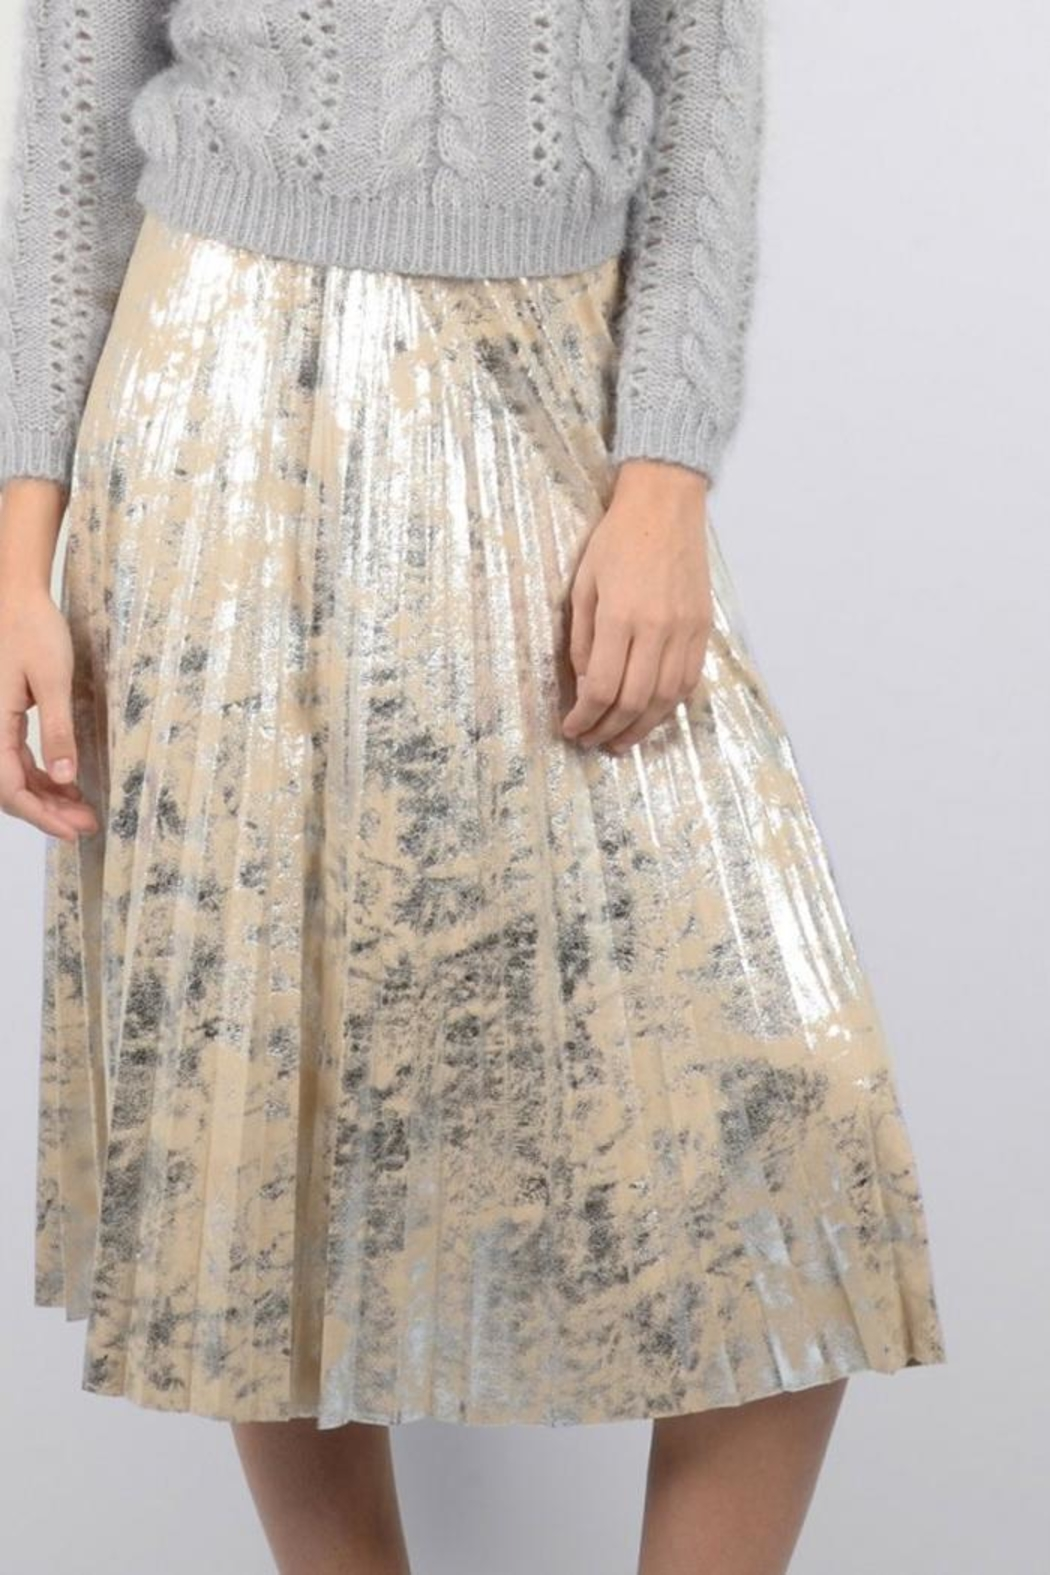 Molly Bracken Silver Suede Skirt - Side Cropped Image